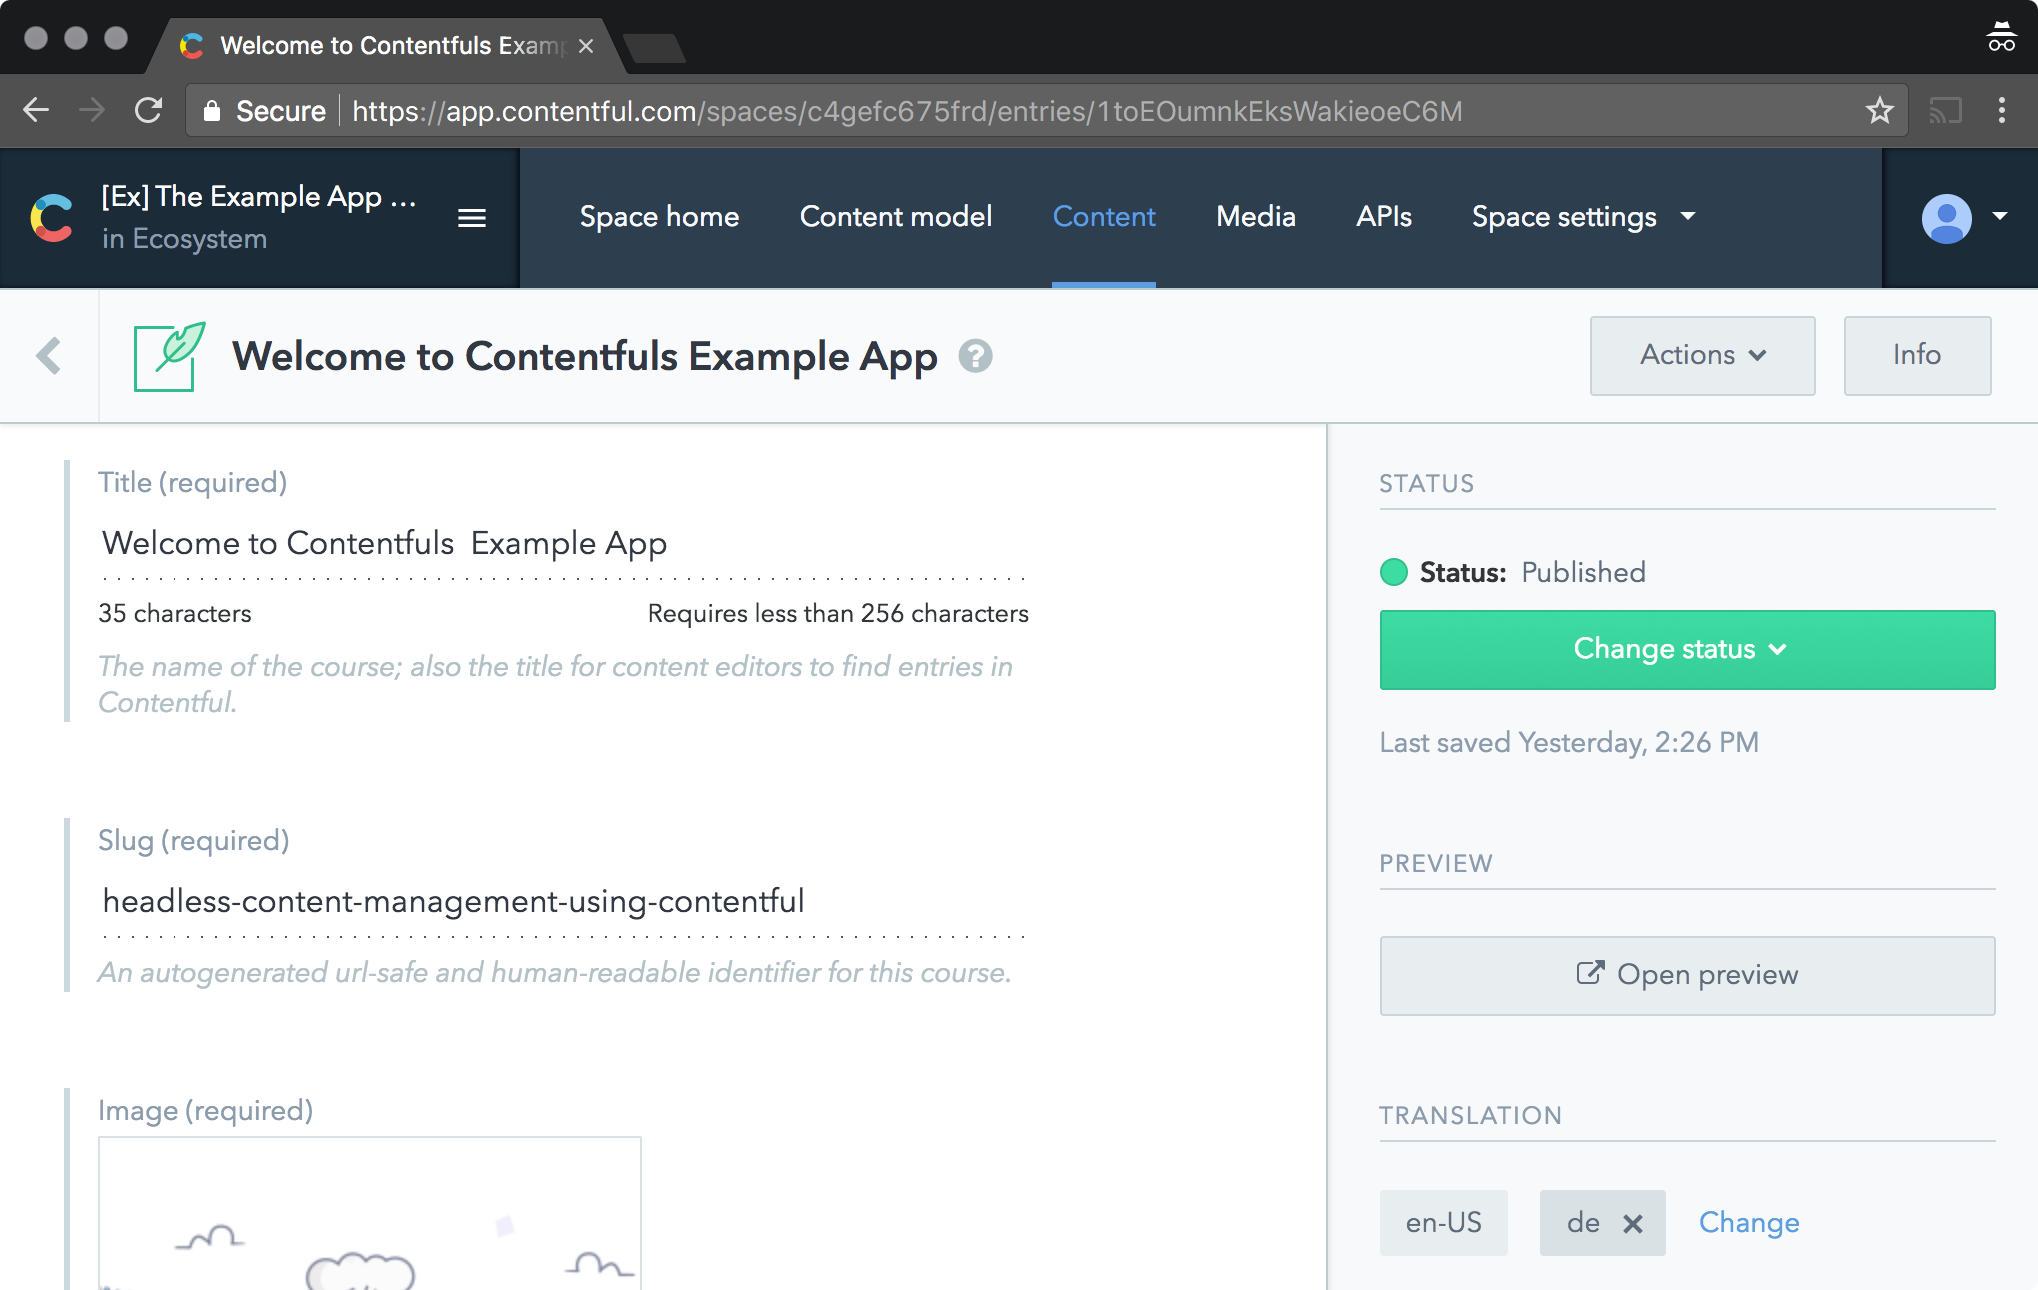 Screenshot: Contentful web app